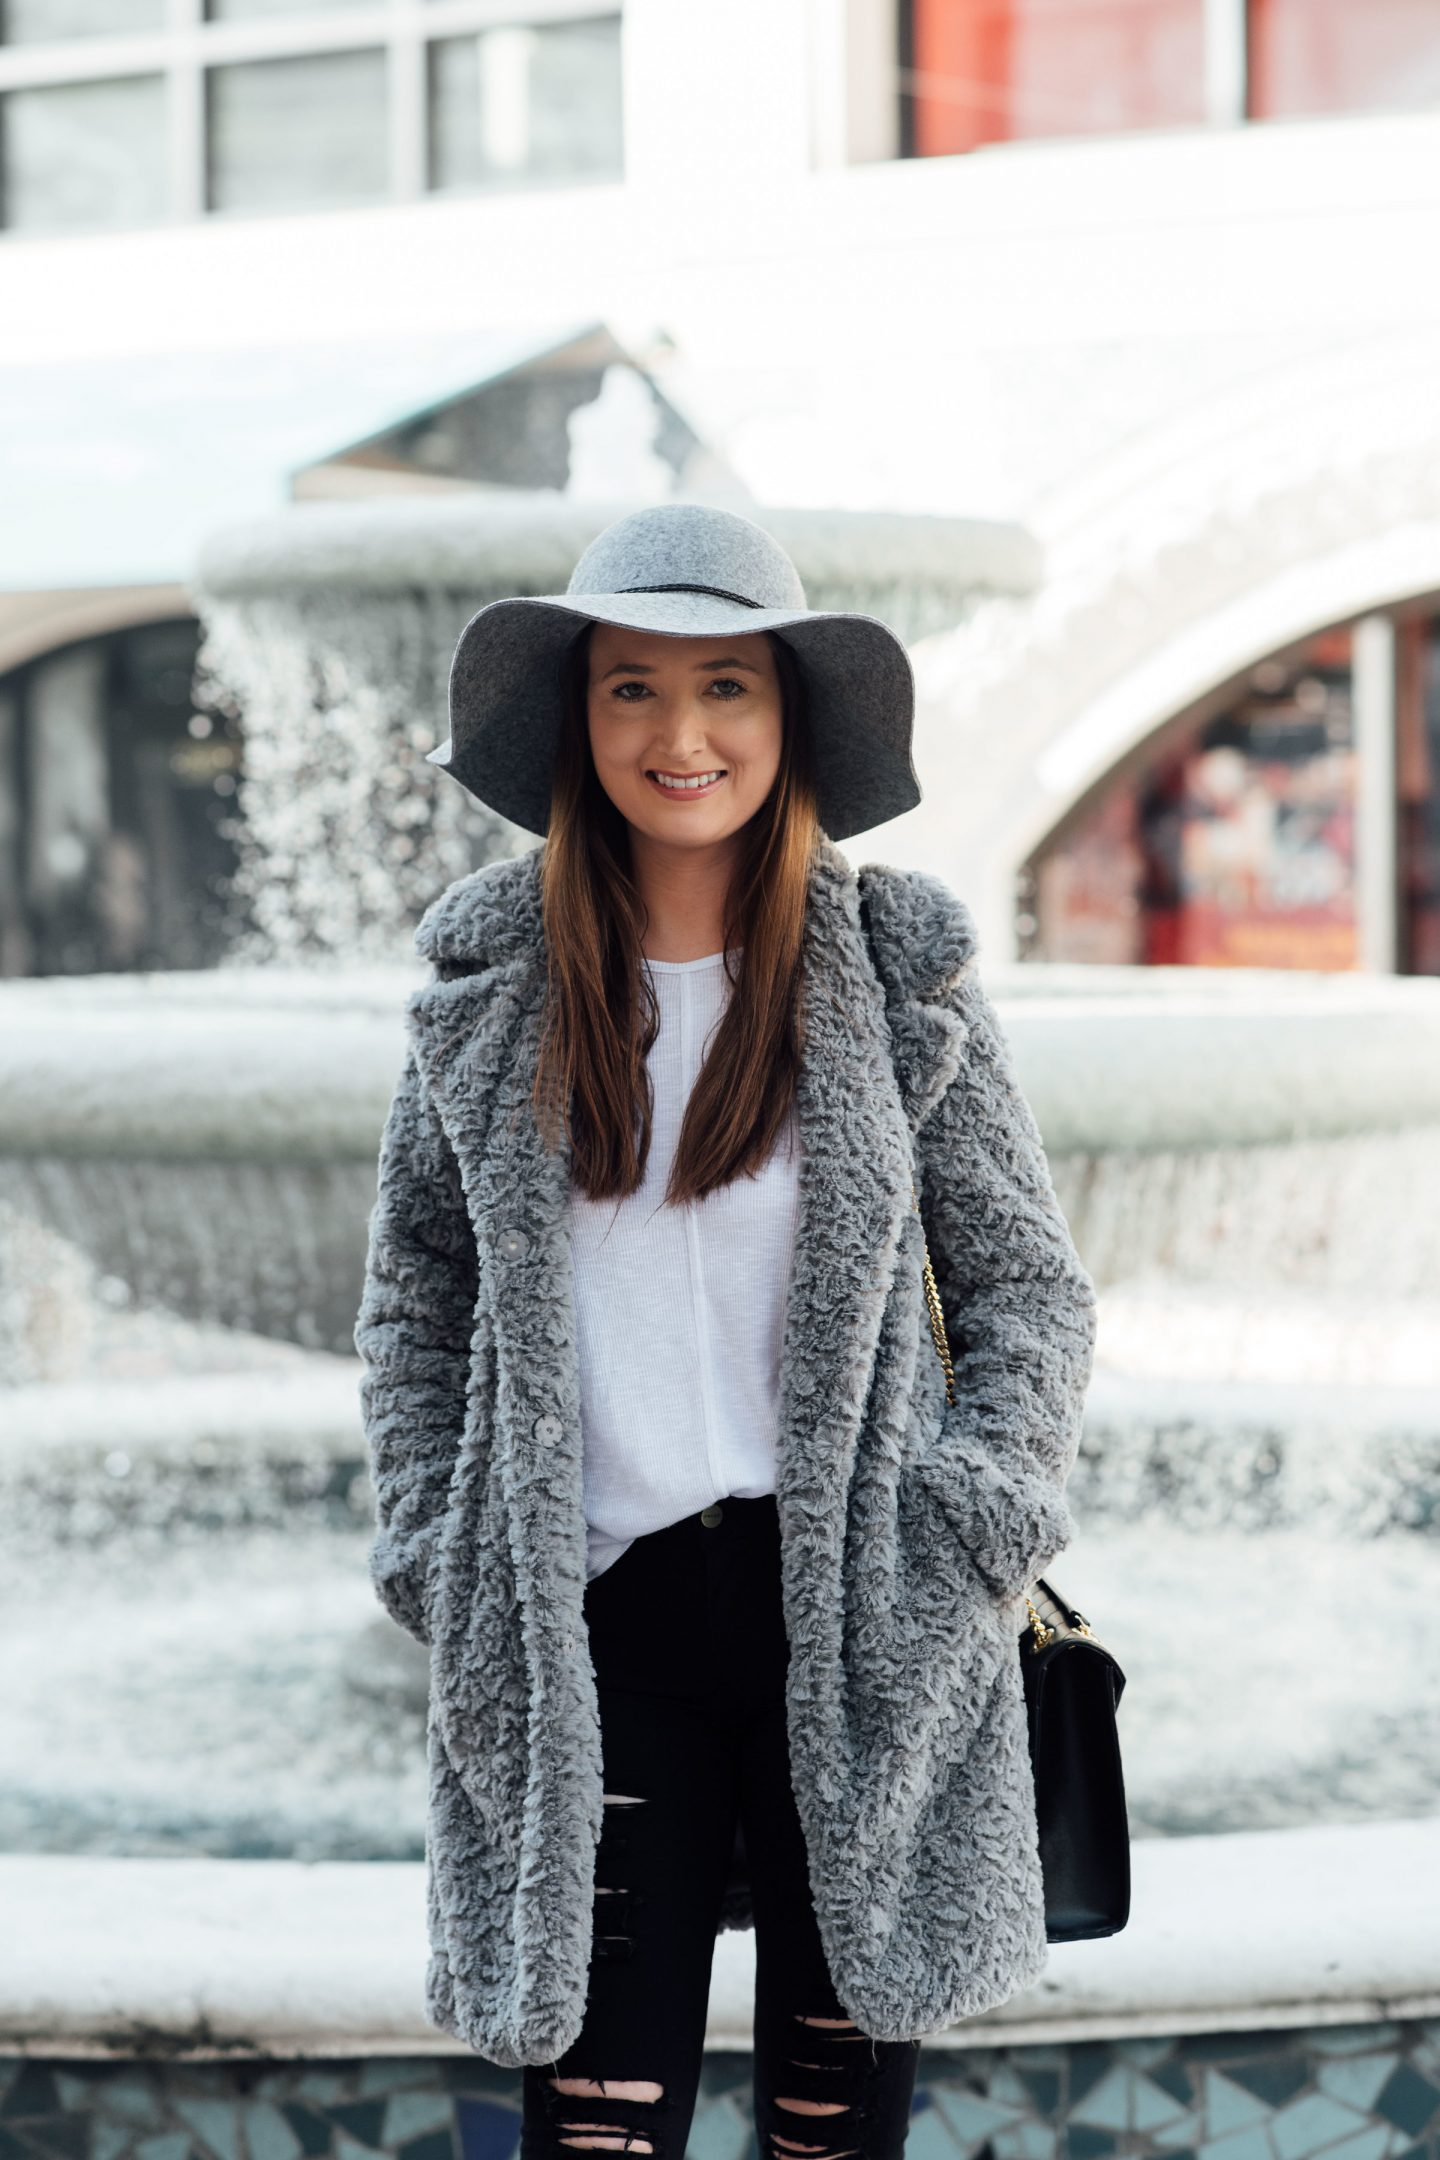 cute winter outfit ideas and best stores for inspiration